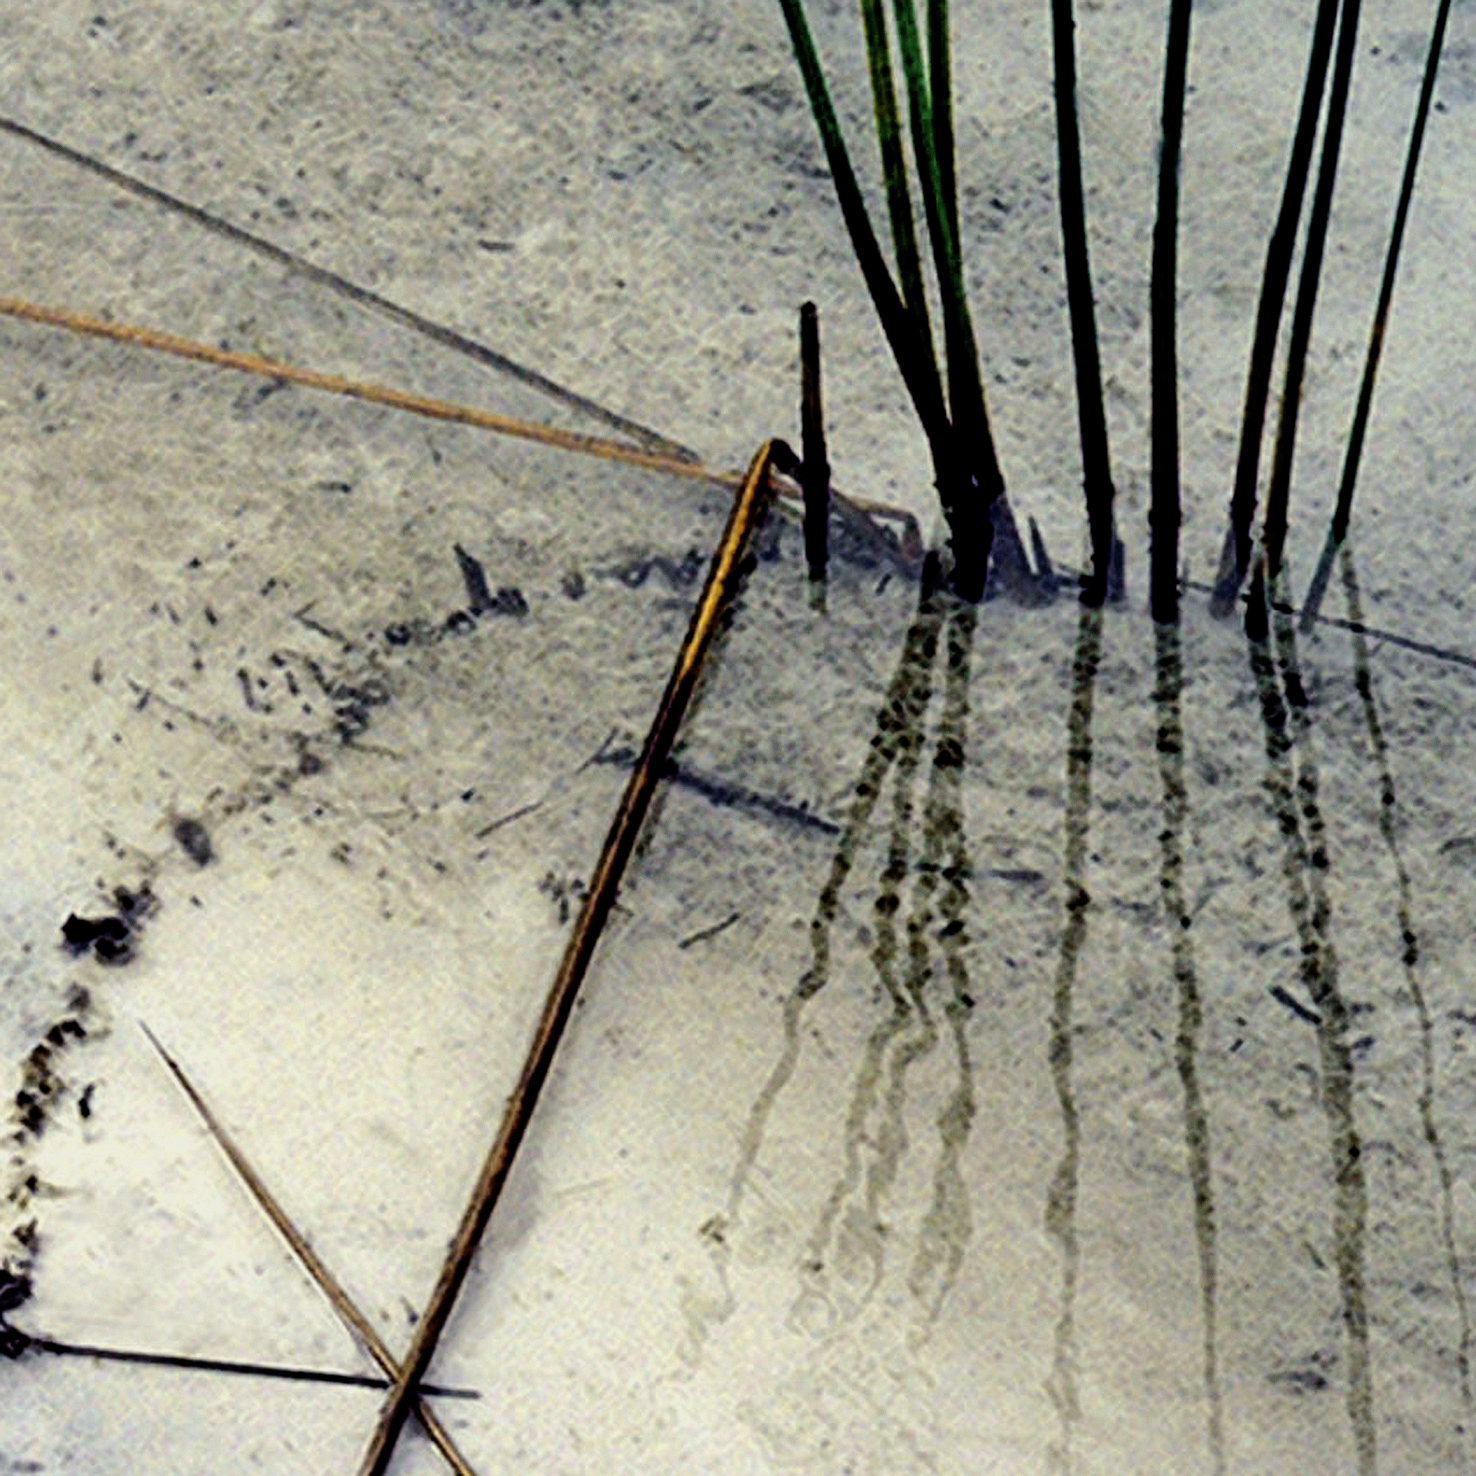 20 reeds & reflection